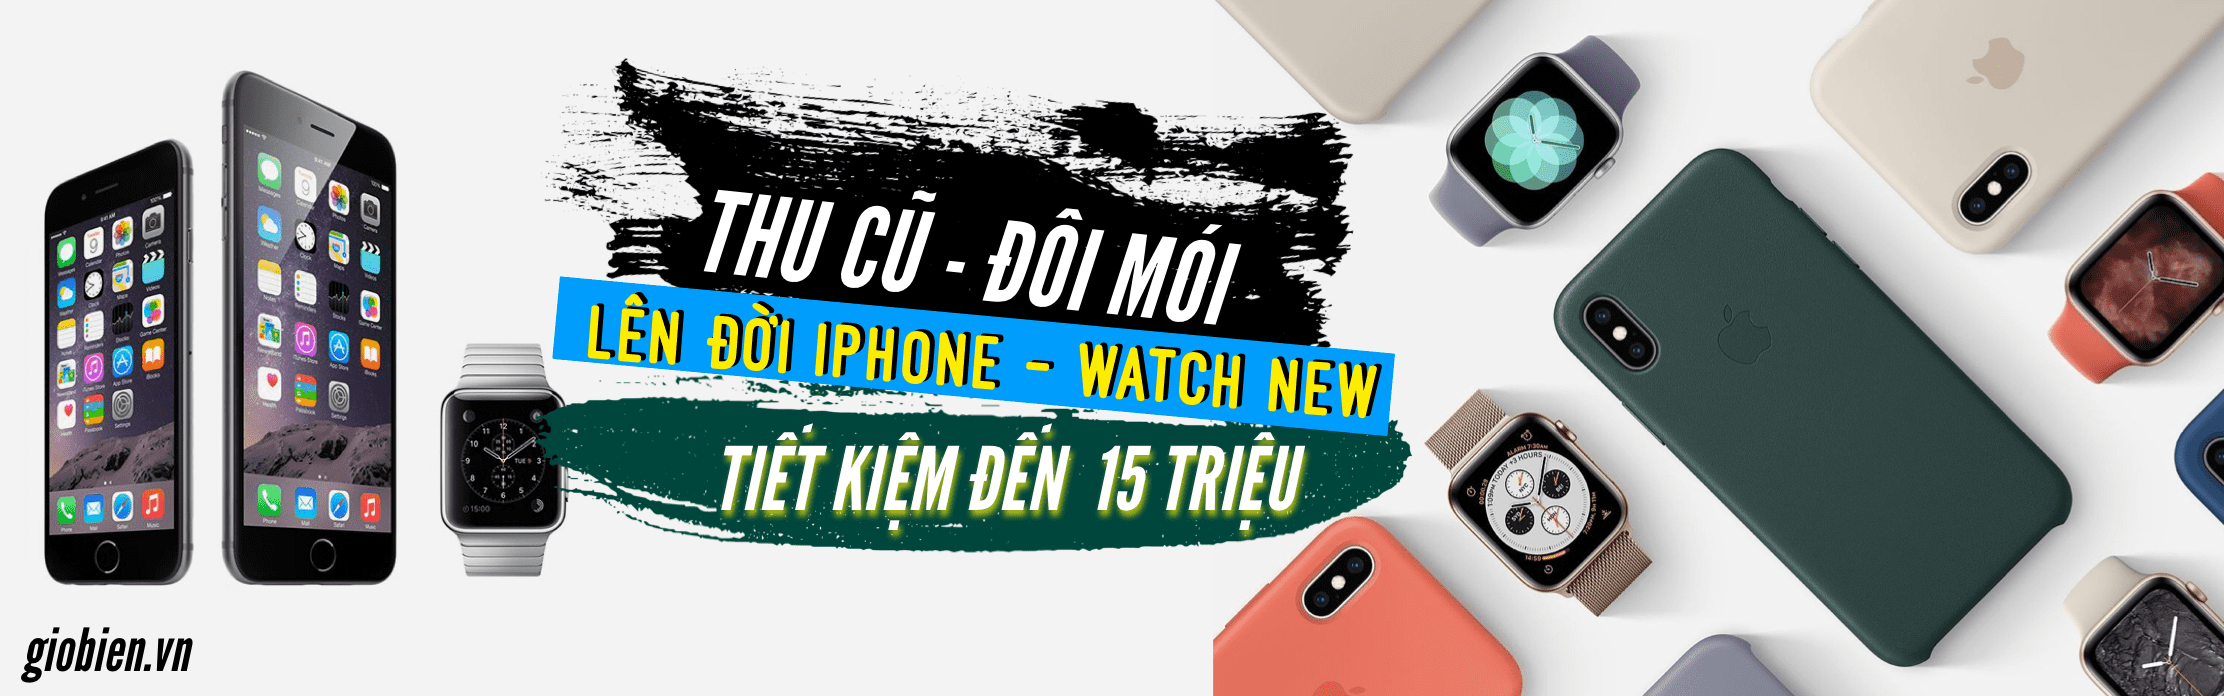 Thu đổi iPhone, Apple Watch, Macbook